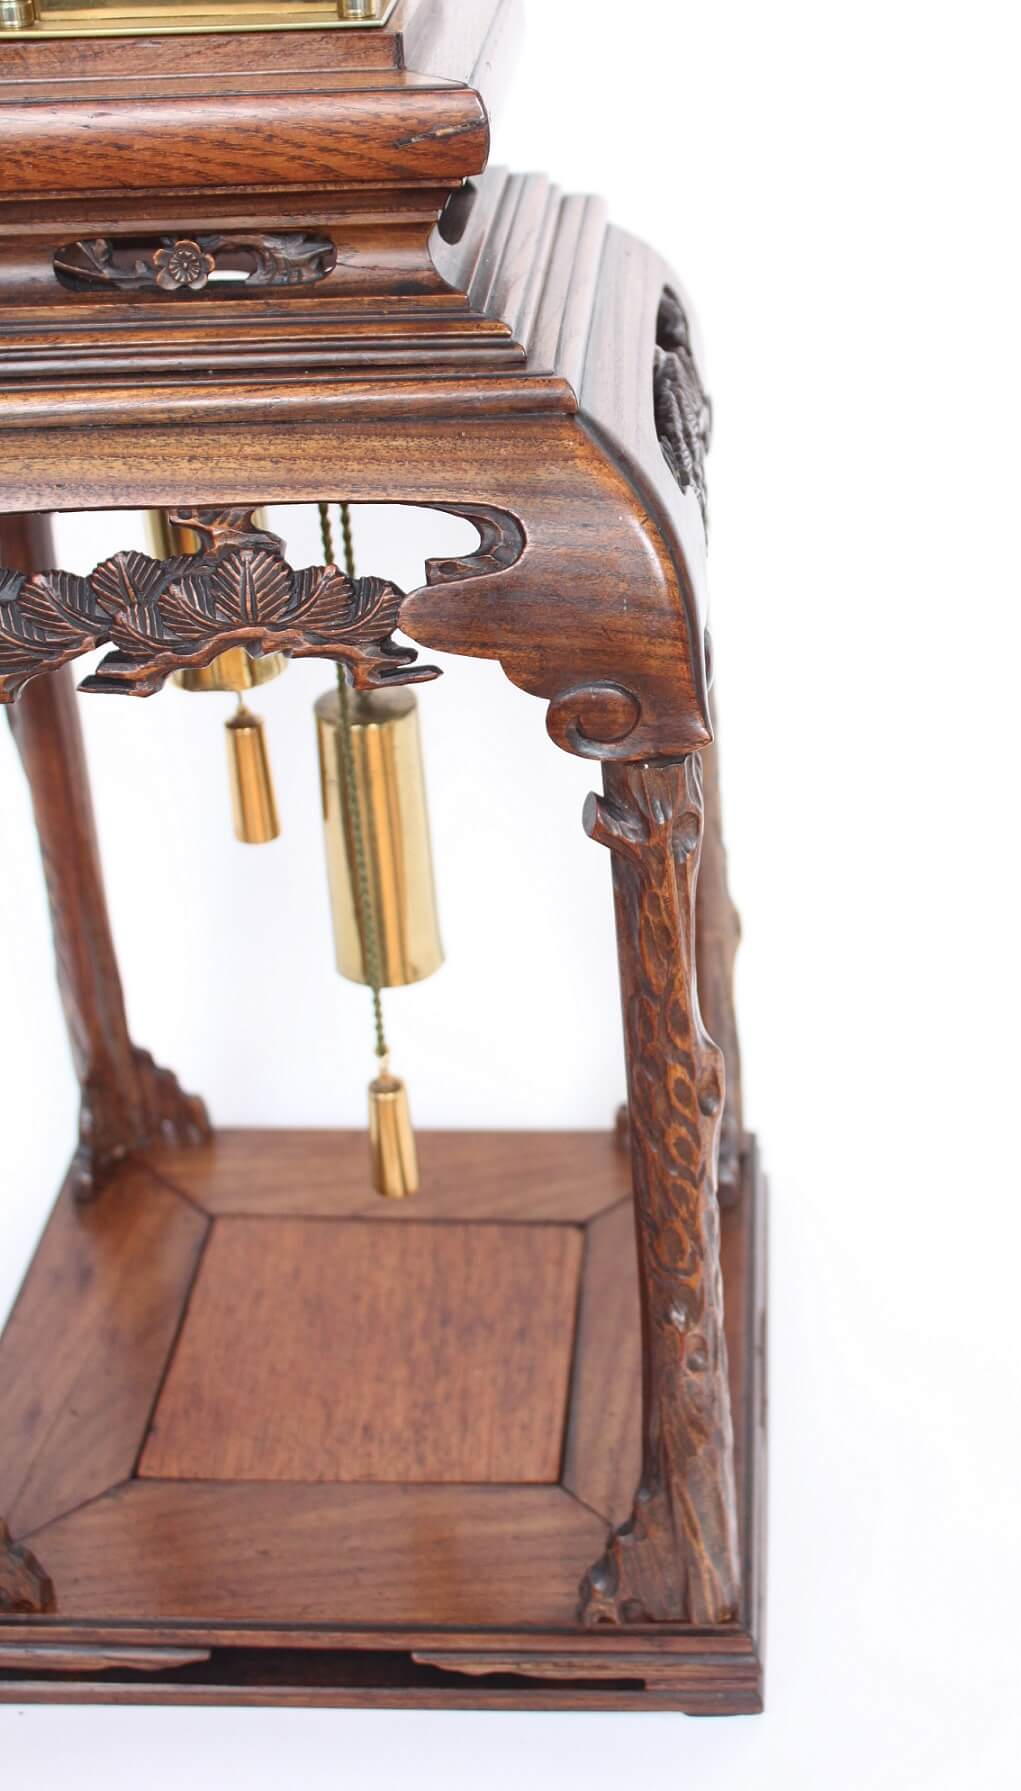 Japan-Japanese-yagura-dokei-lantern-striking-alarm-calendar-antique-stand-antique--clock-